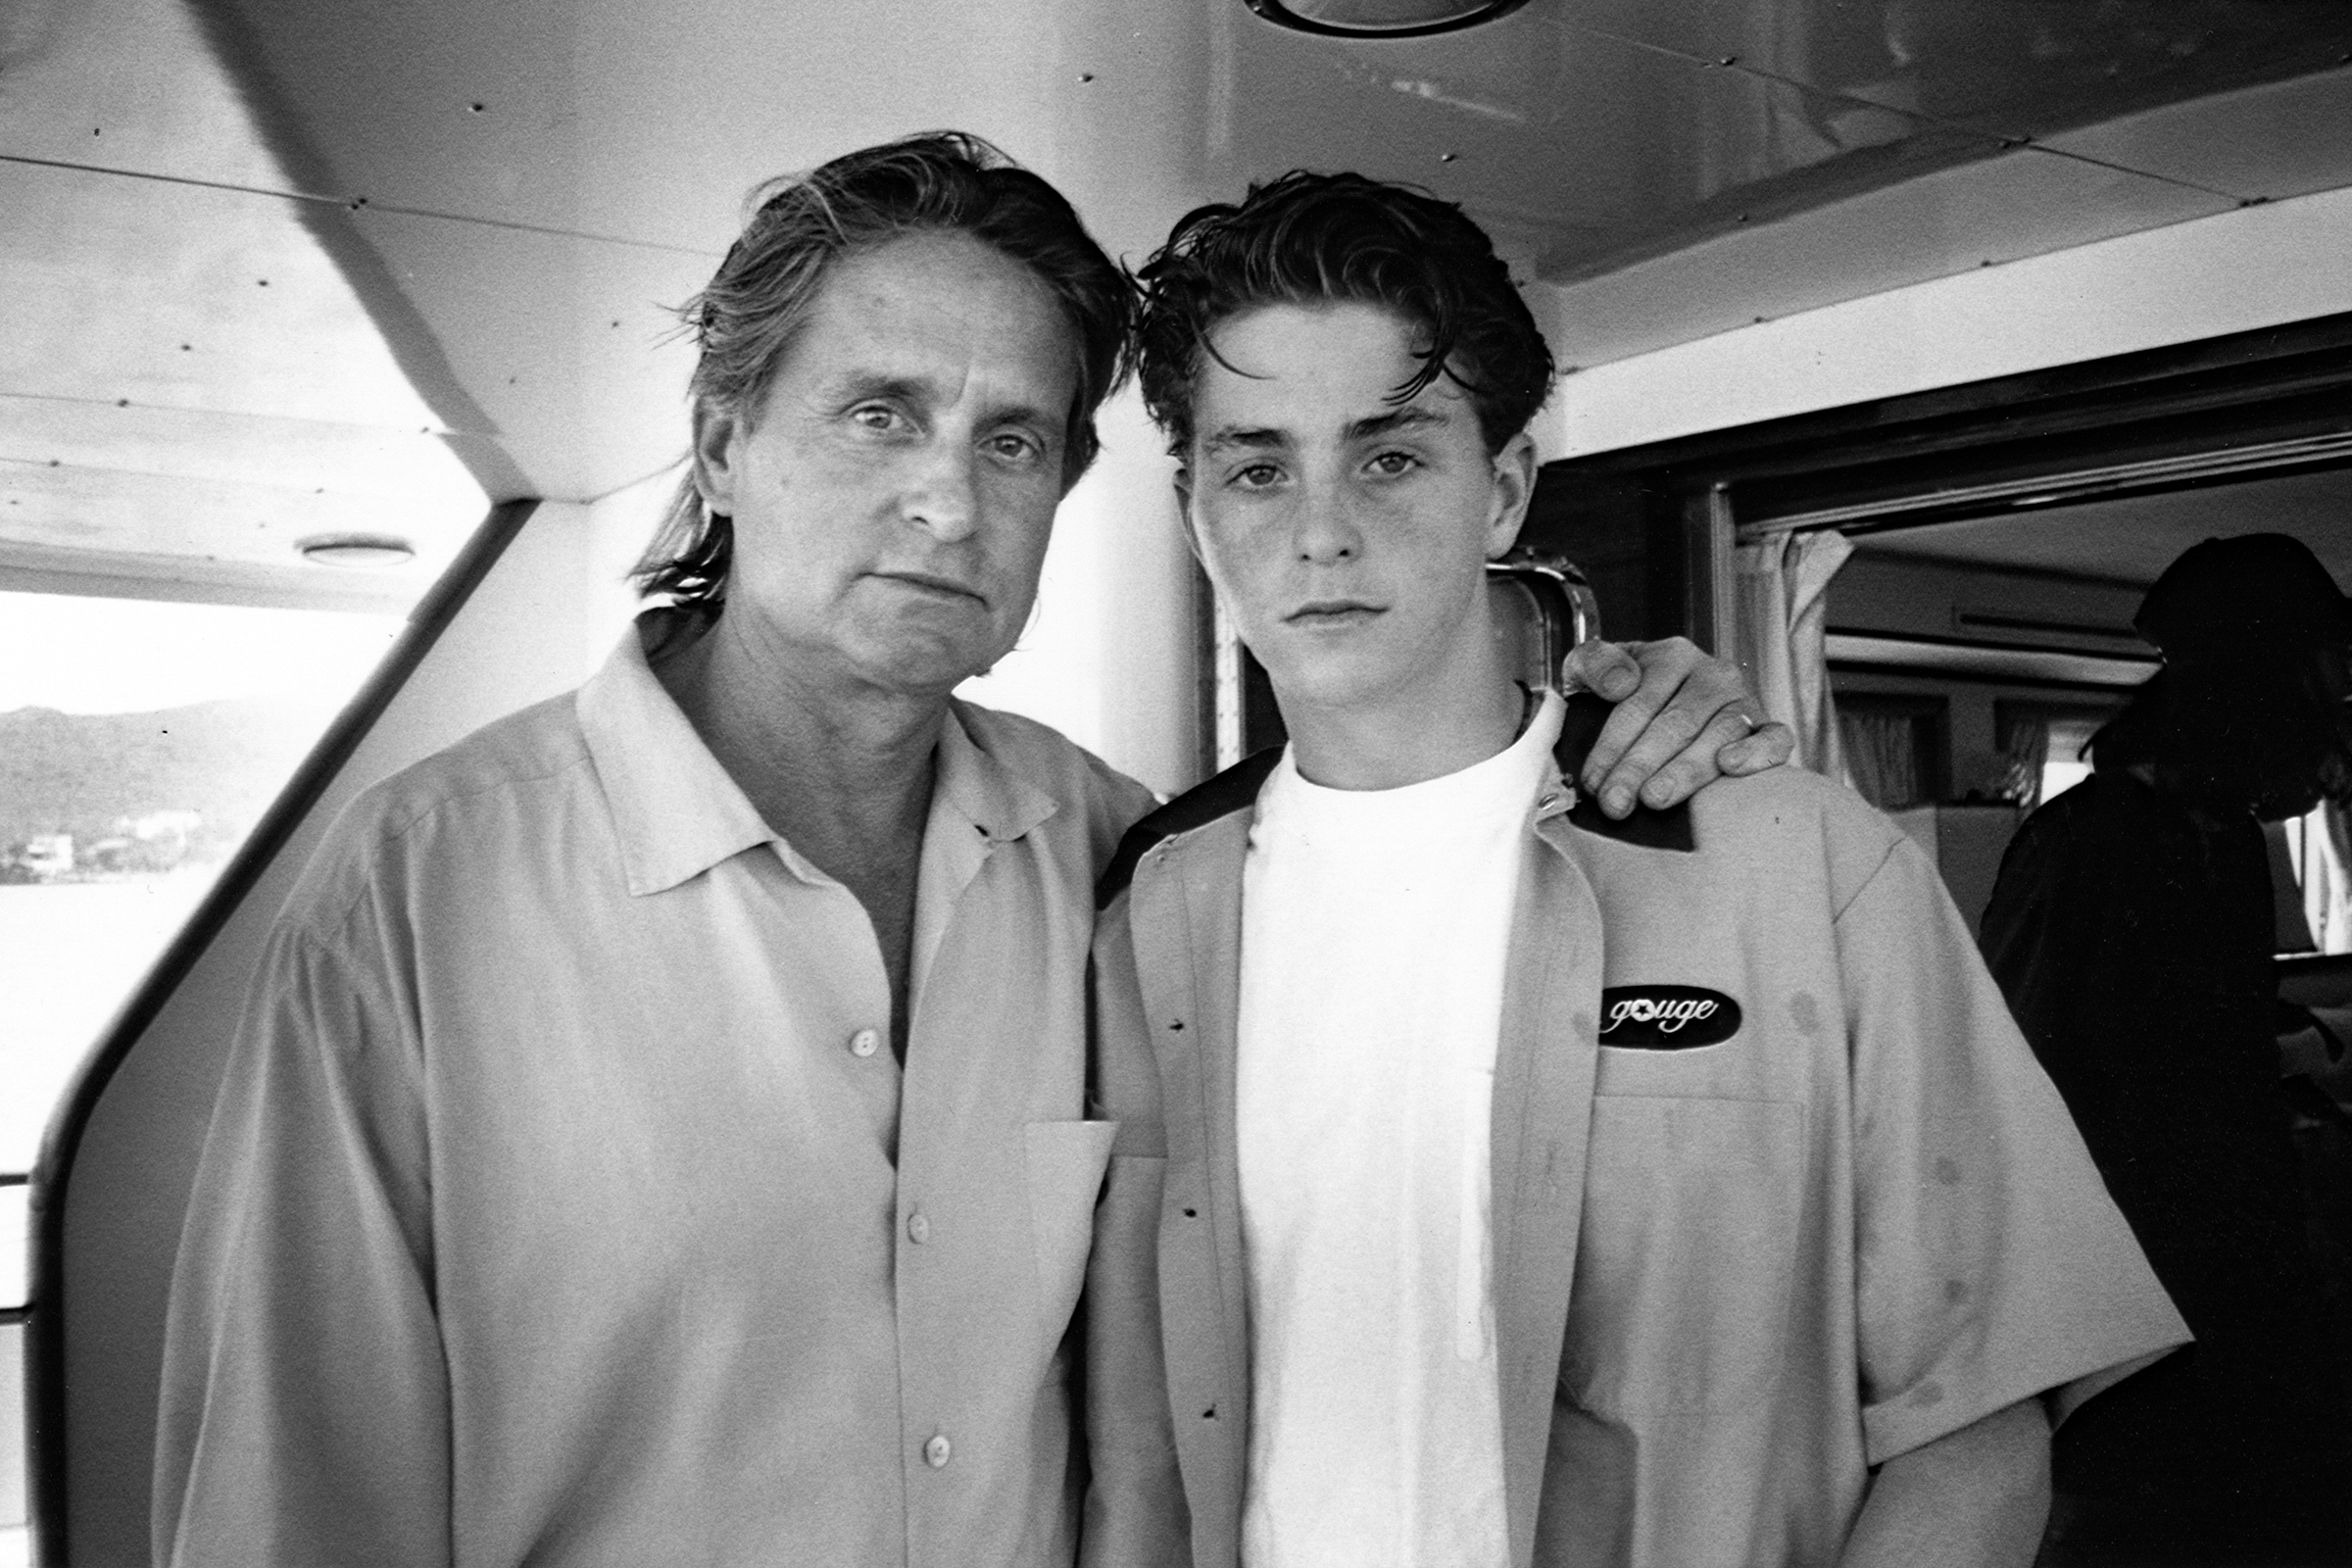 Cameron with his father, Michael on Lake Shasta. Photo credit: Michael Douglas Collection, Howard Gotlieb Archival Research Center at Boston University